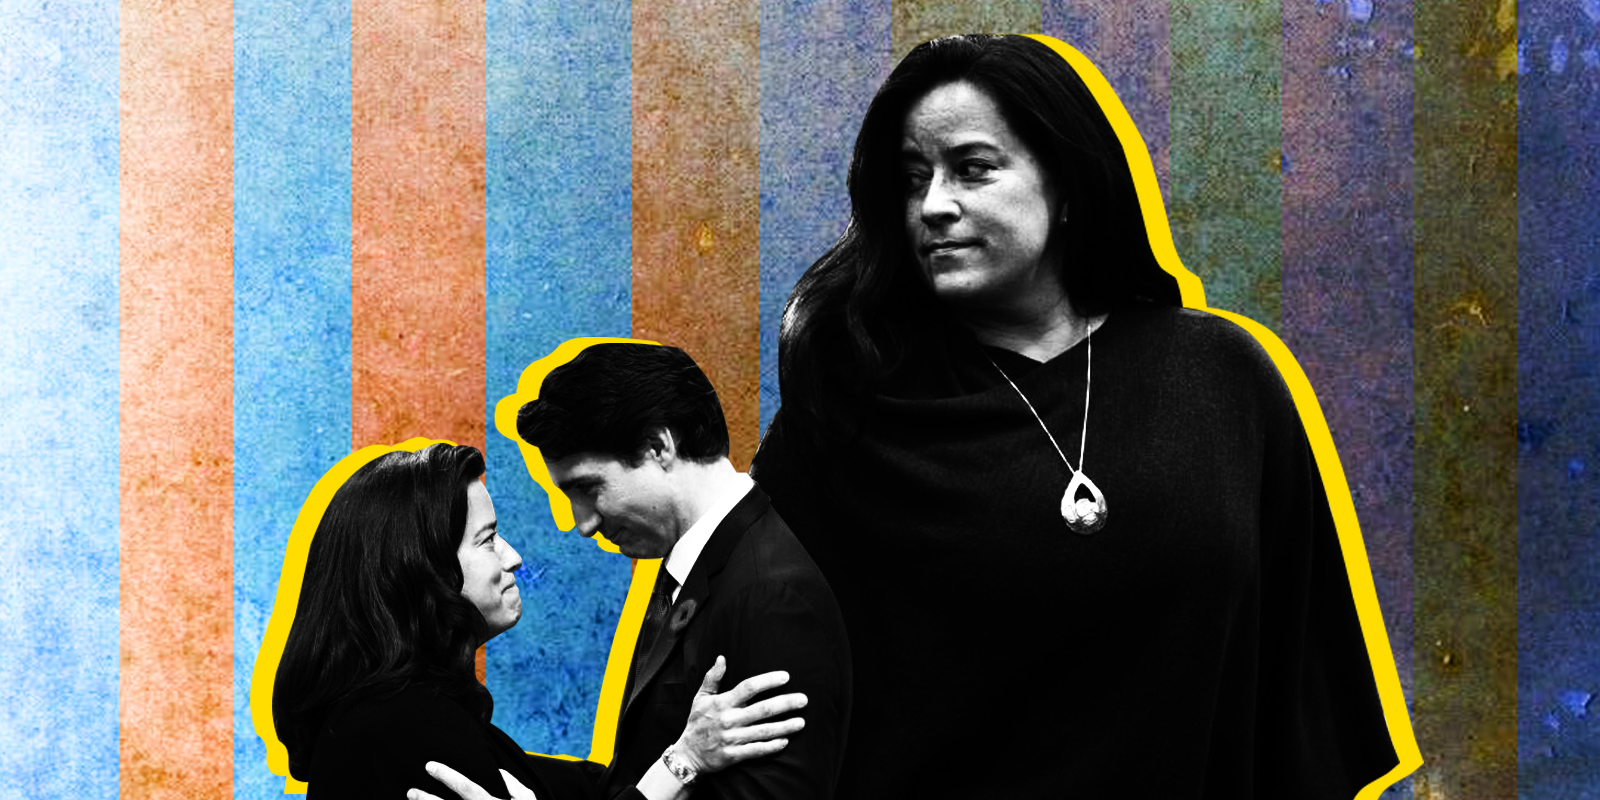 The Liberal party's only potential savour is Jody Wilson-Raybould